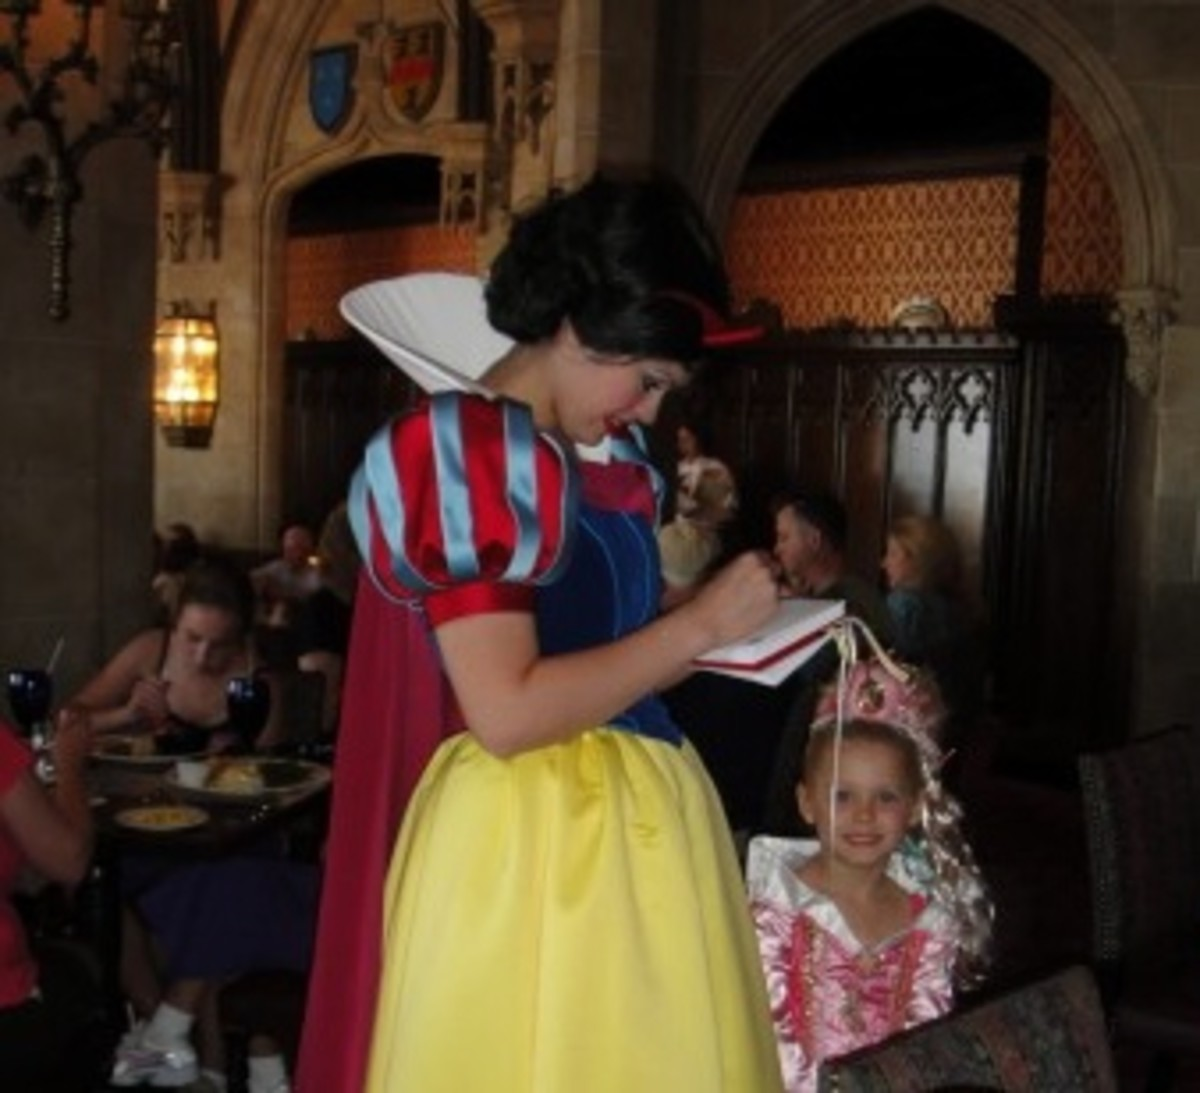 An Autograph from Snow White